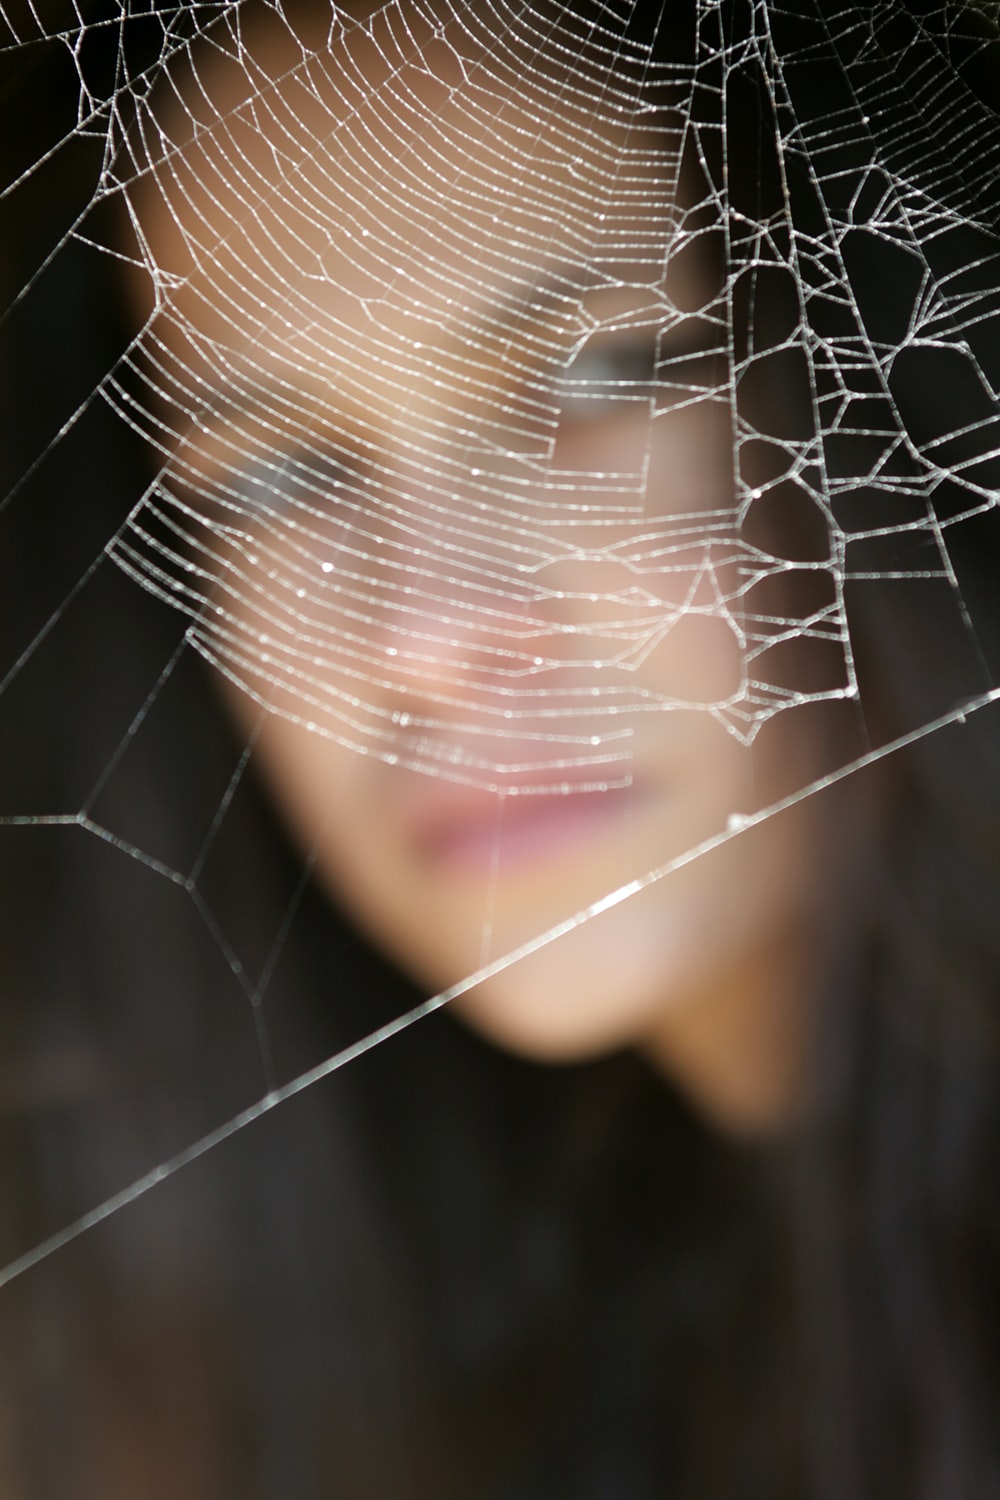 woman in black shirt with spider web on her face